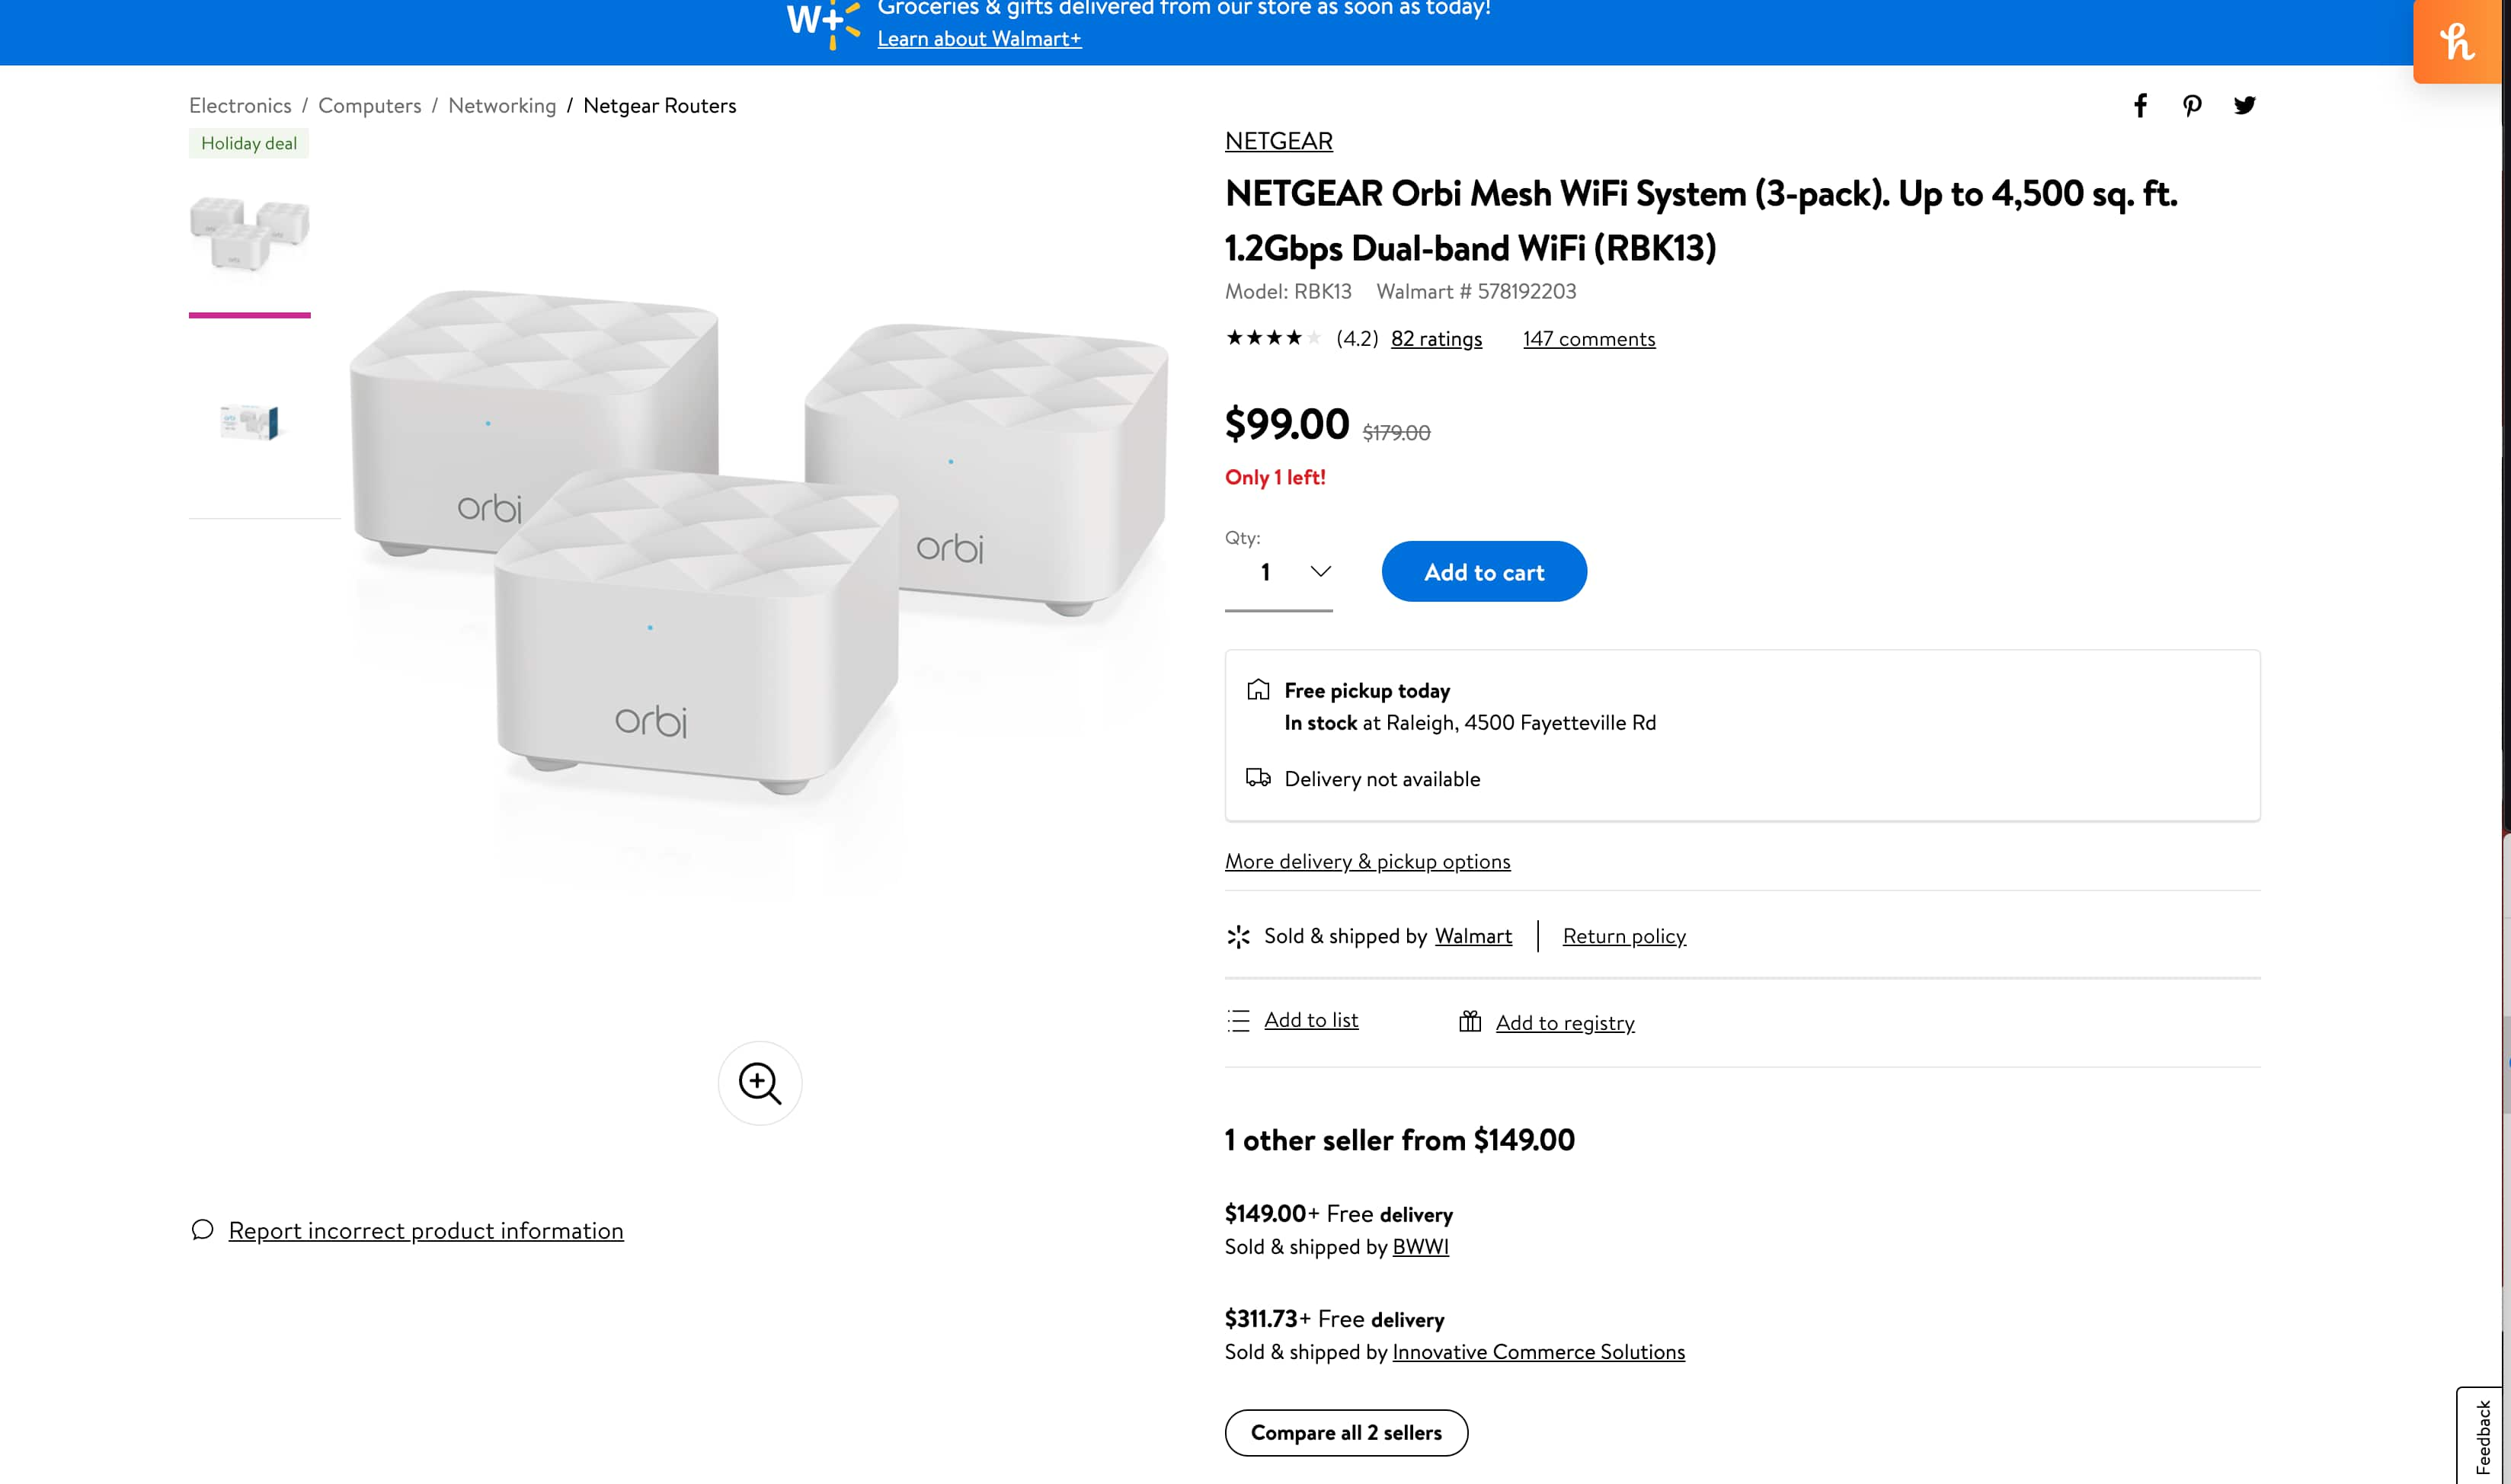 $99 NETGEAR Orbi Mesh WiFi System (3-pack). Up to 4,500 sq. ft. Available for in-store pick up for $99